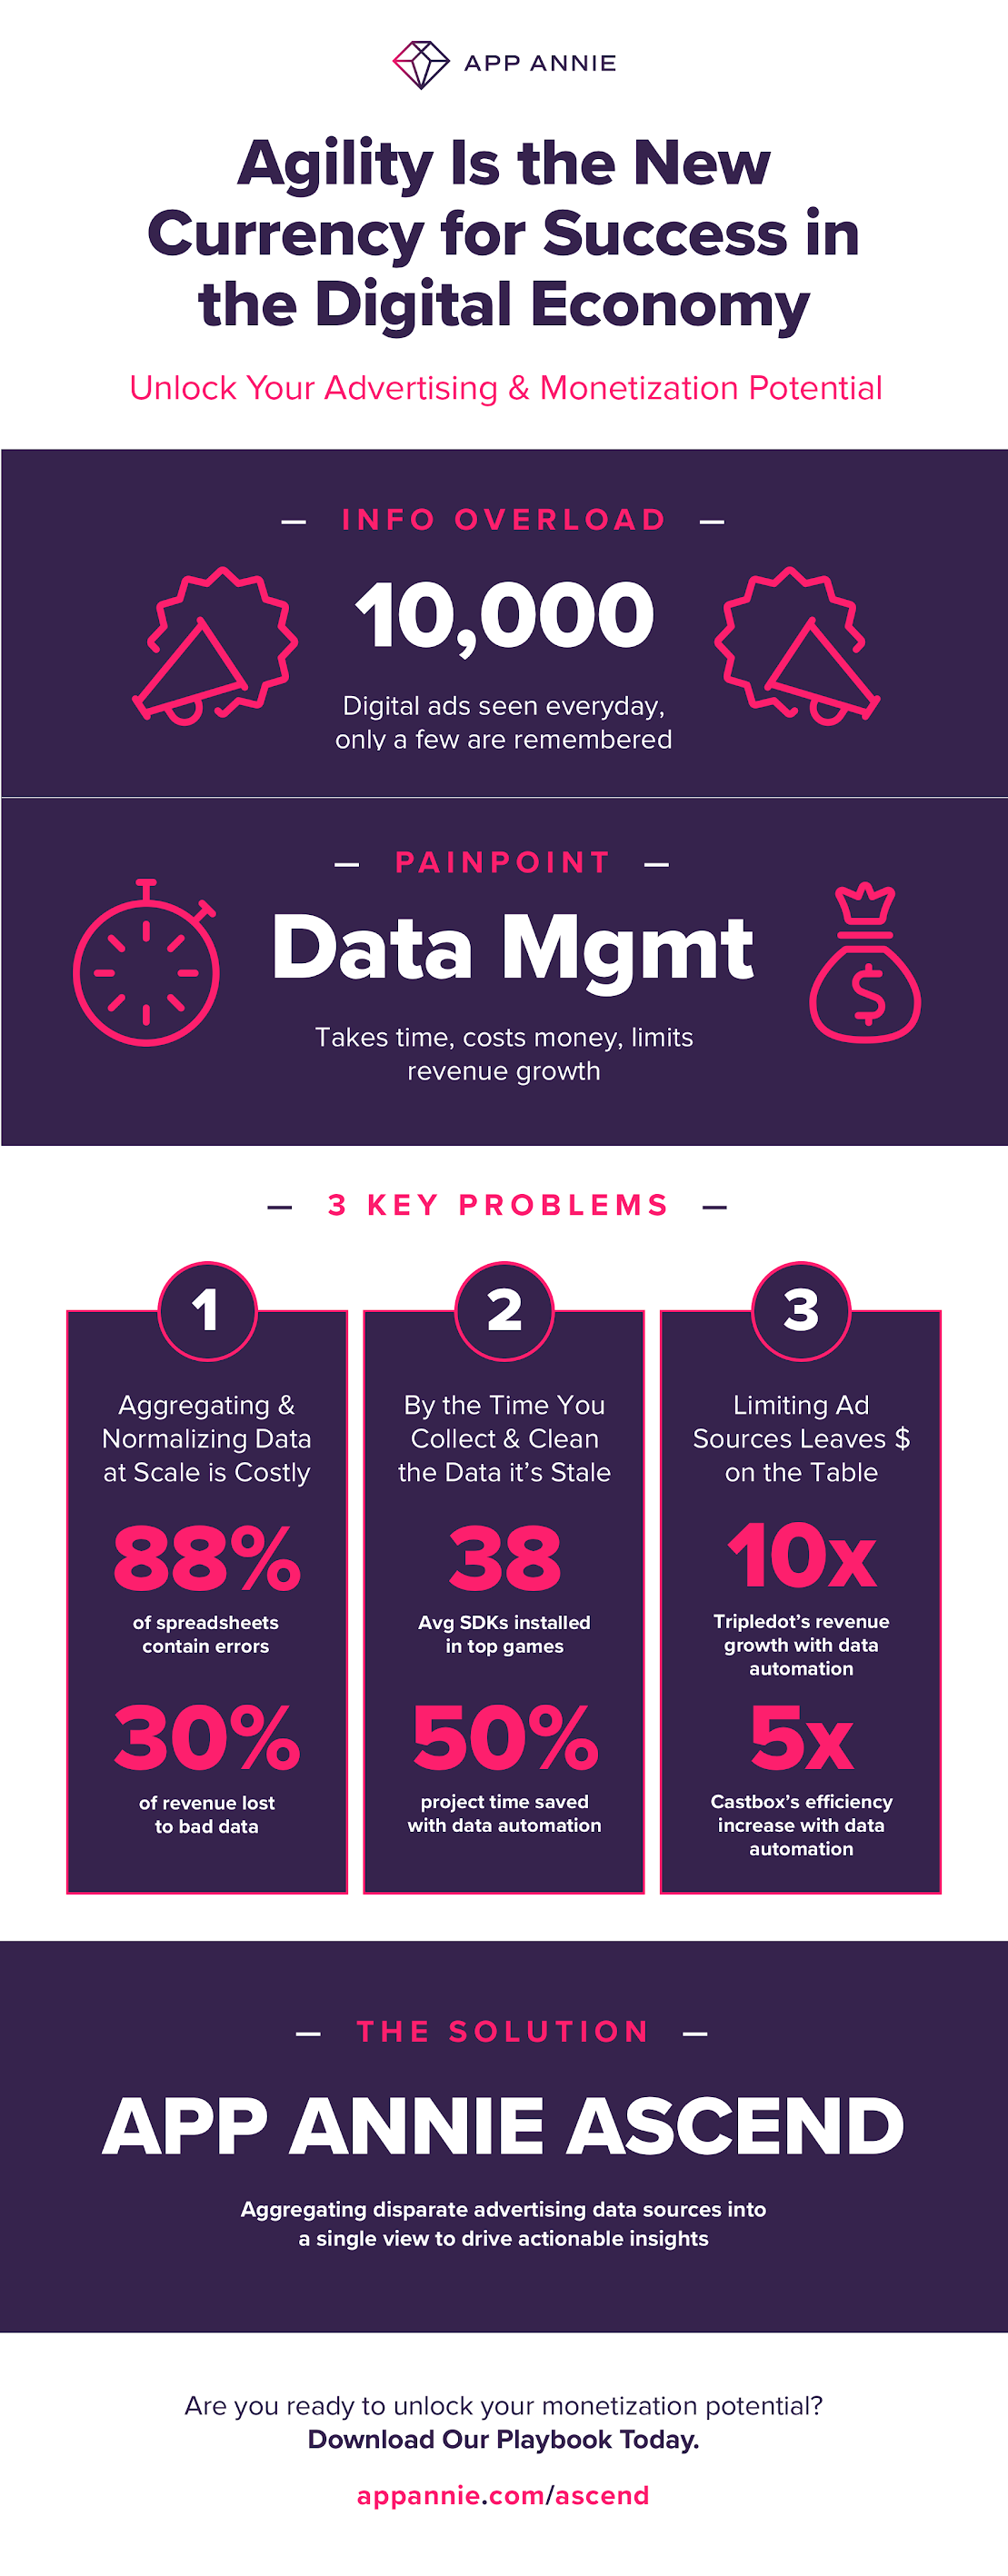 Three Problems in Digital Advertising And Monetization and How to Overcome The#Infographic